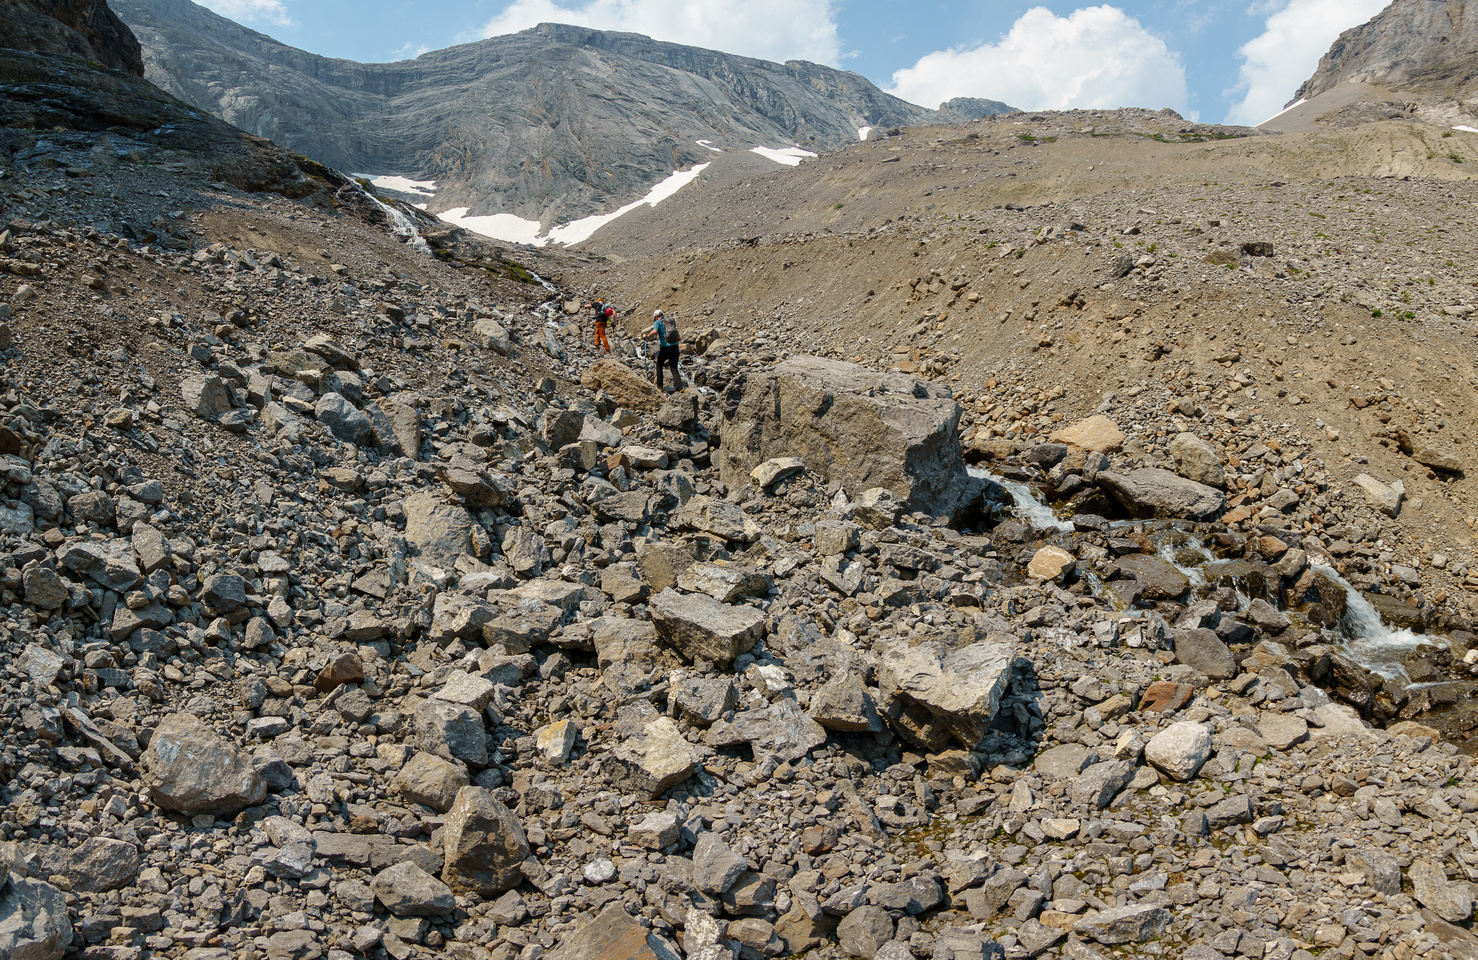 Hiking up the Cone Mountain access drainage.